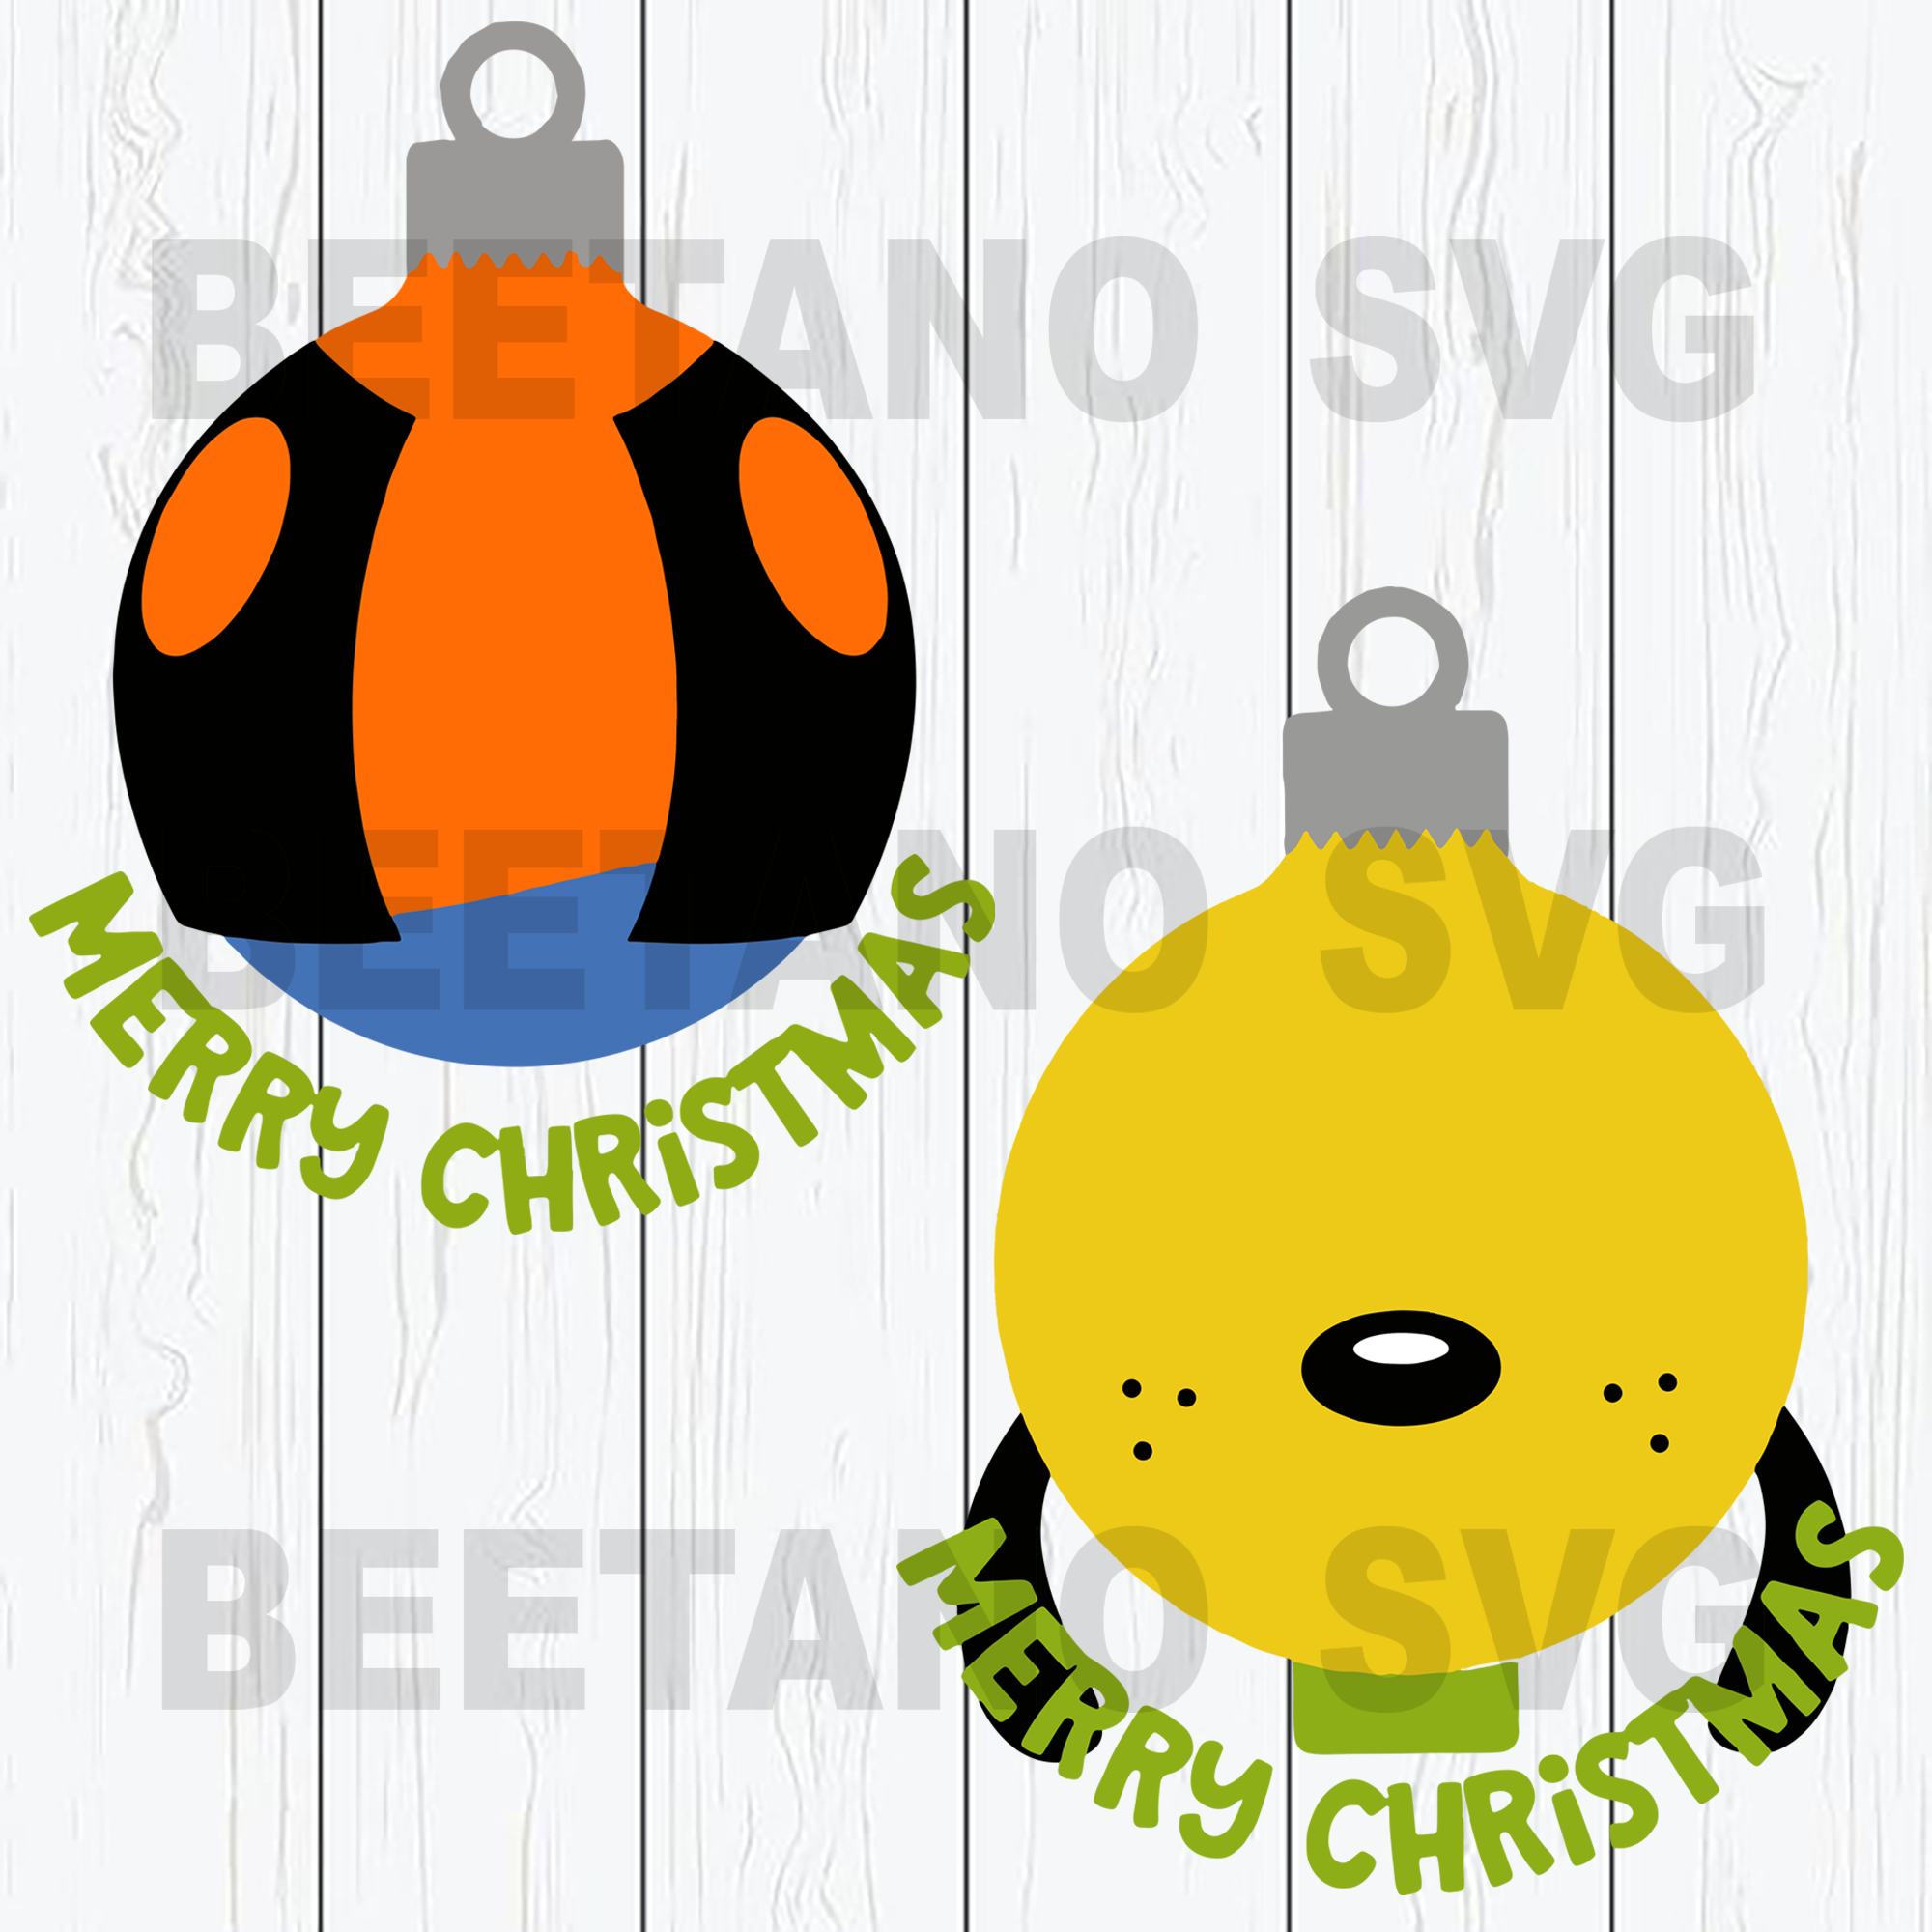 Merry Christmas Goofy Svg Bundle, Christmas Ball Pluto And Goofy Svg File, Pluto And Goofy Svg, Christmas Cutting Files For Cricut, SVG, DXF, EPS, PNG Instant Download